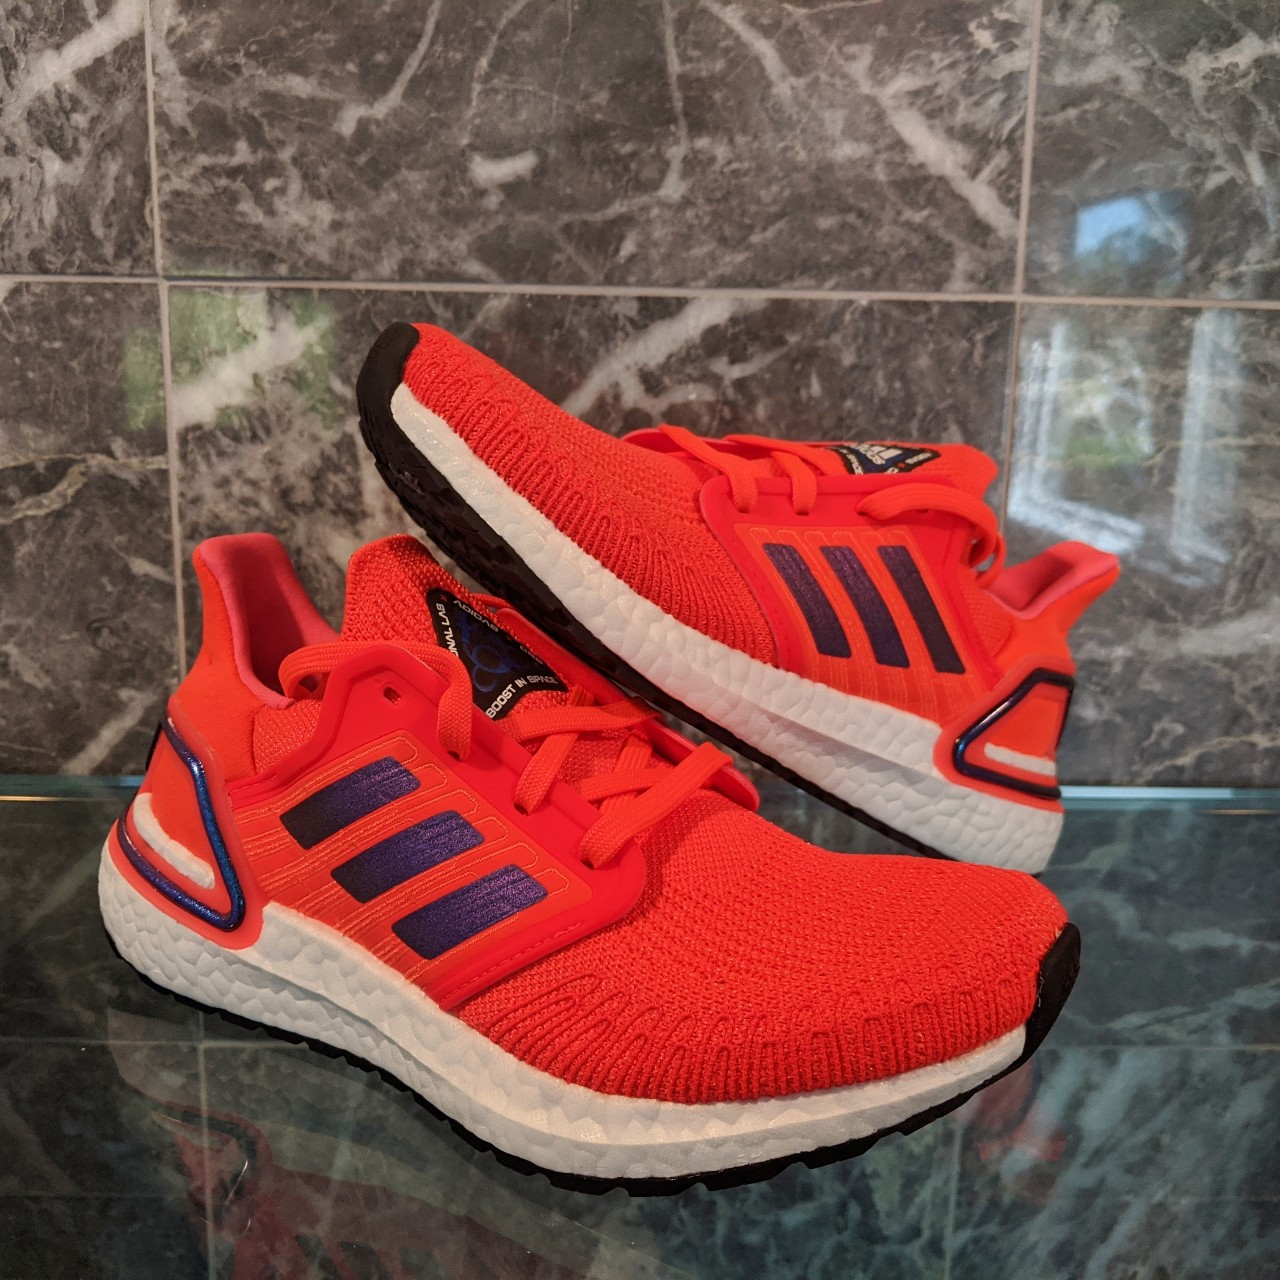 Adidas Ultraboost 20 ISS US NATIONAL LAB Solar Red...